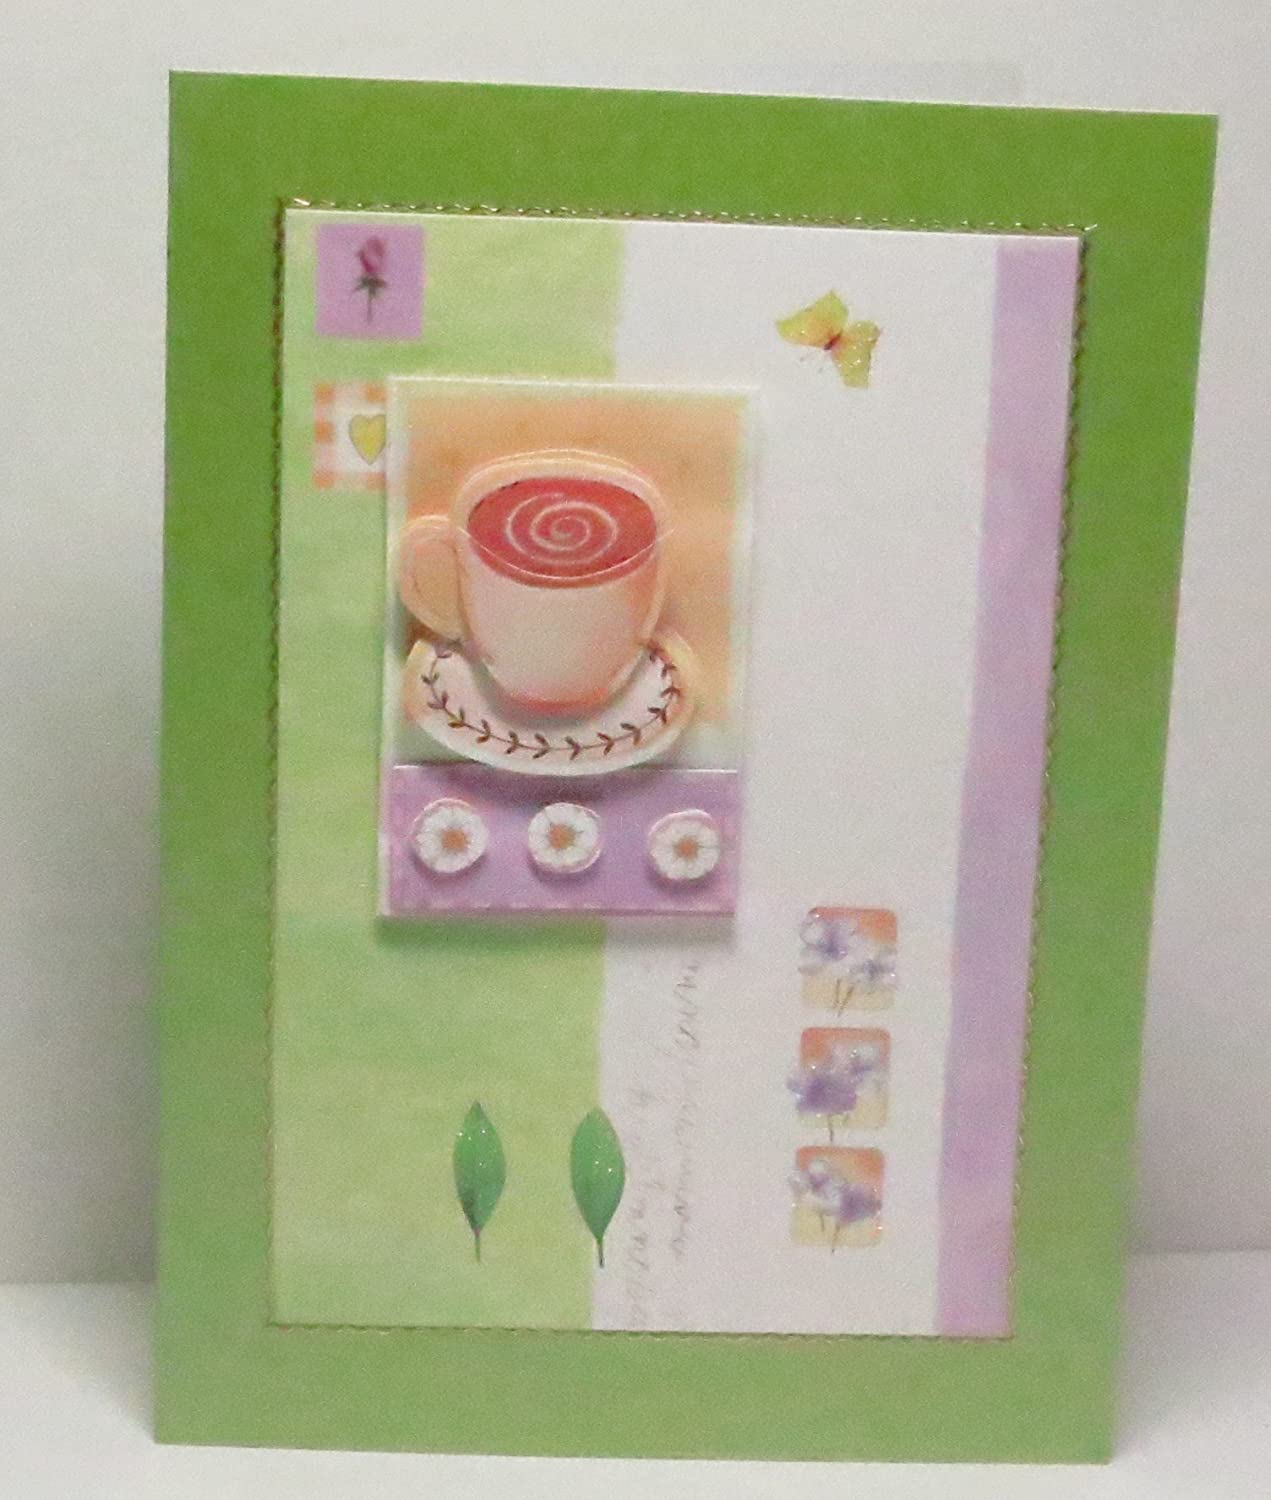 Limited Edition on Lime Green Pearlescent Base For Any Occasion Leaves /& Butterfly Blank Greeting Card with Glittered Highlights /& Gold Border Handmade 3D Cup of Tea with Flowers